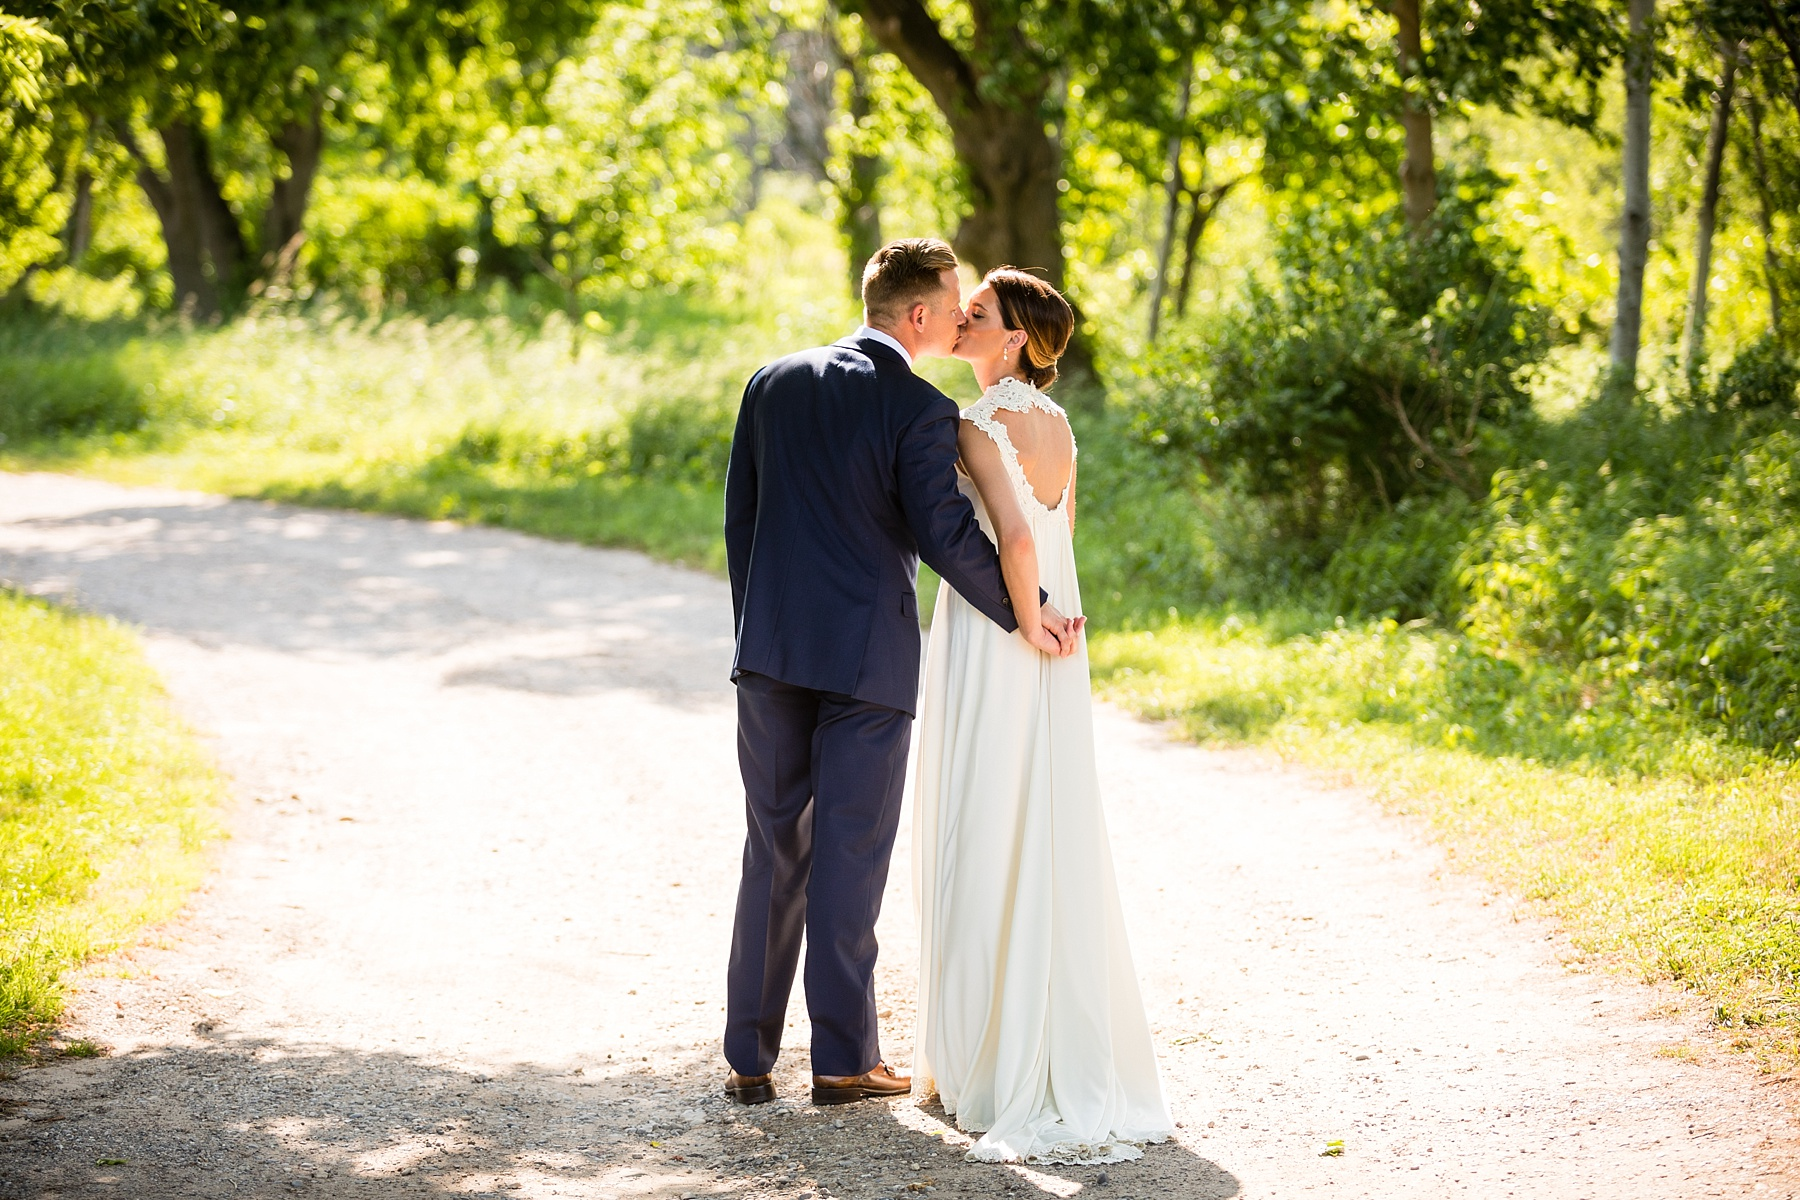 Brandon_Shafer_Photography_Traverse_City_Wedding_0043.jpg